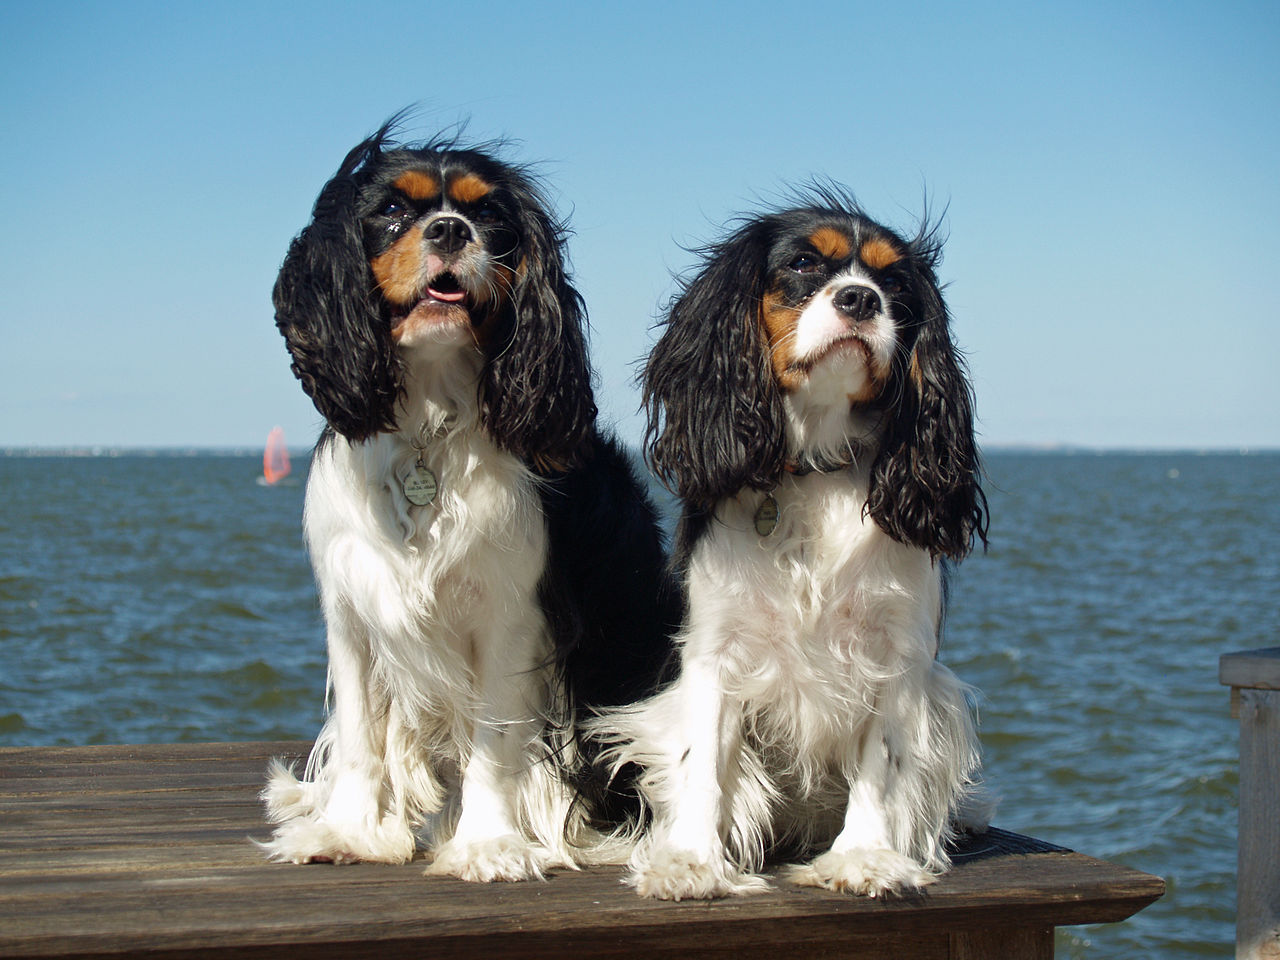 """""""Two dogs with long ears sit on a wooden platform overlooking the sea. They are mostly white, but have black ears and black and brown markings on their faces. Their fur is ruffled by the breeze."""""""